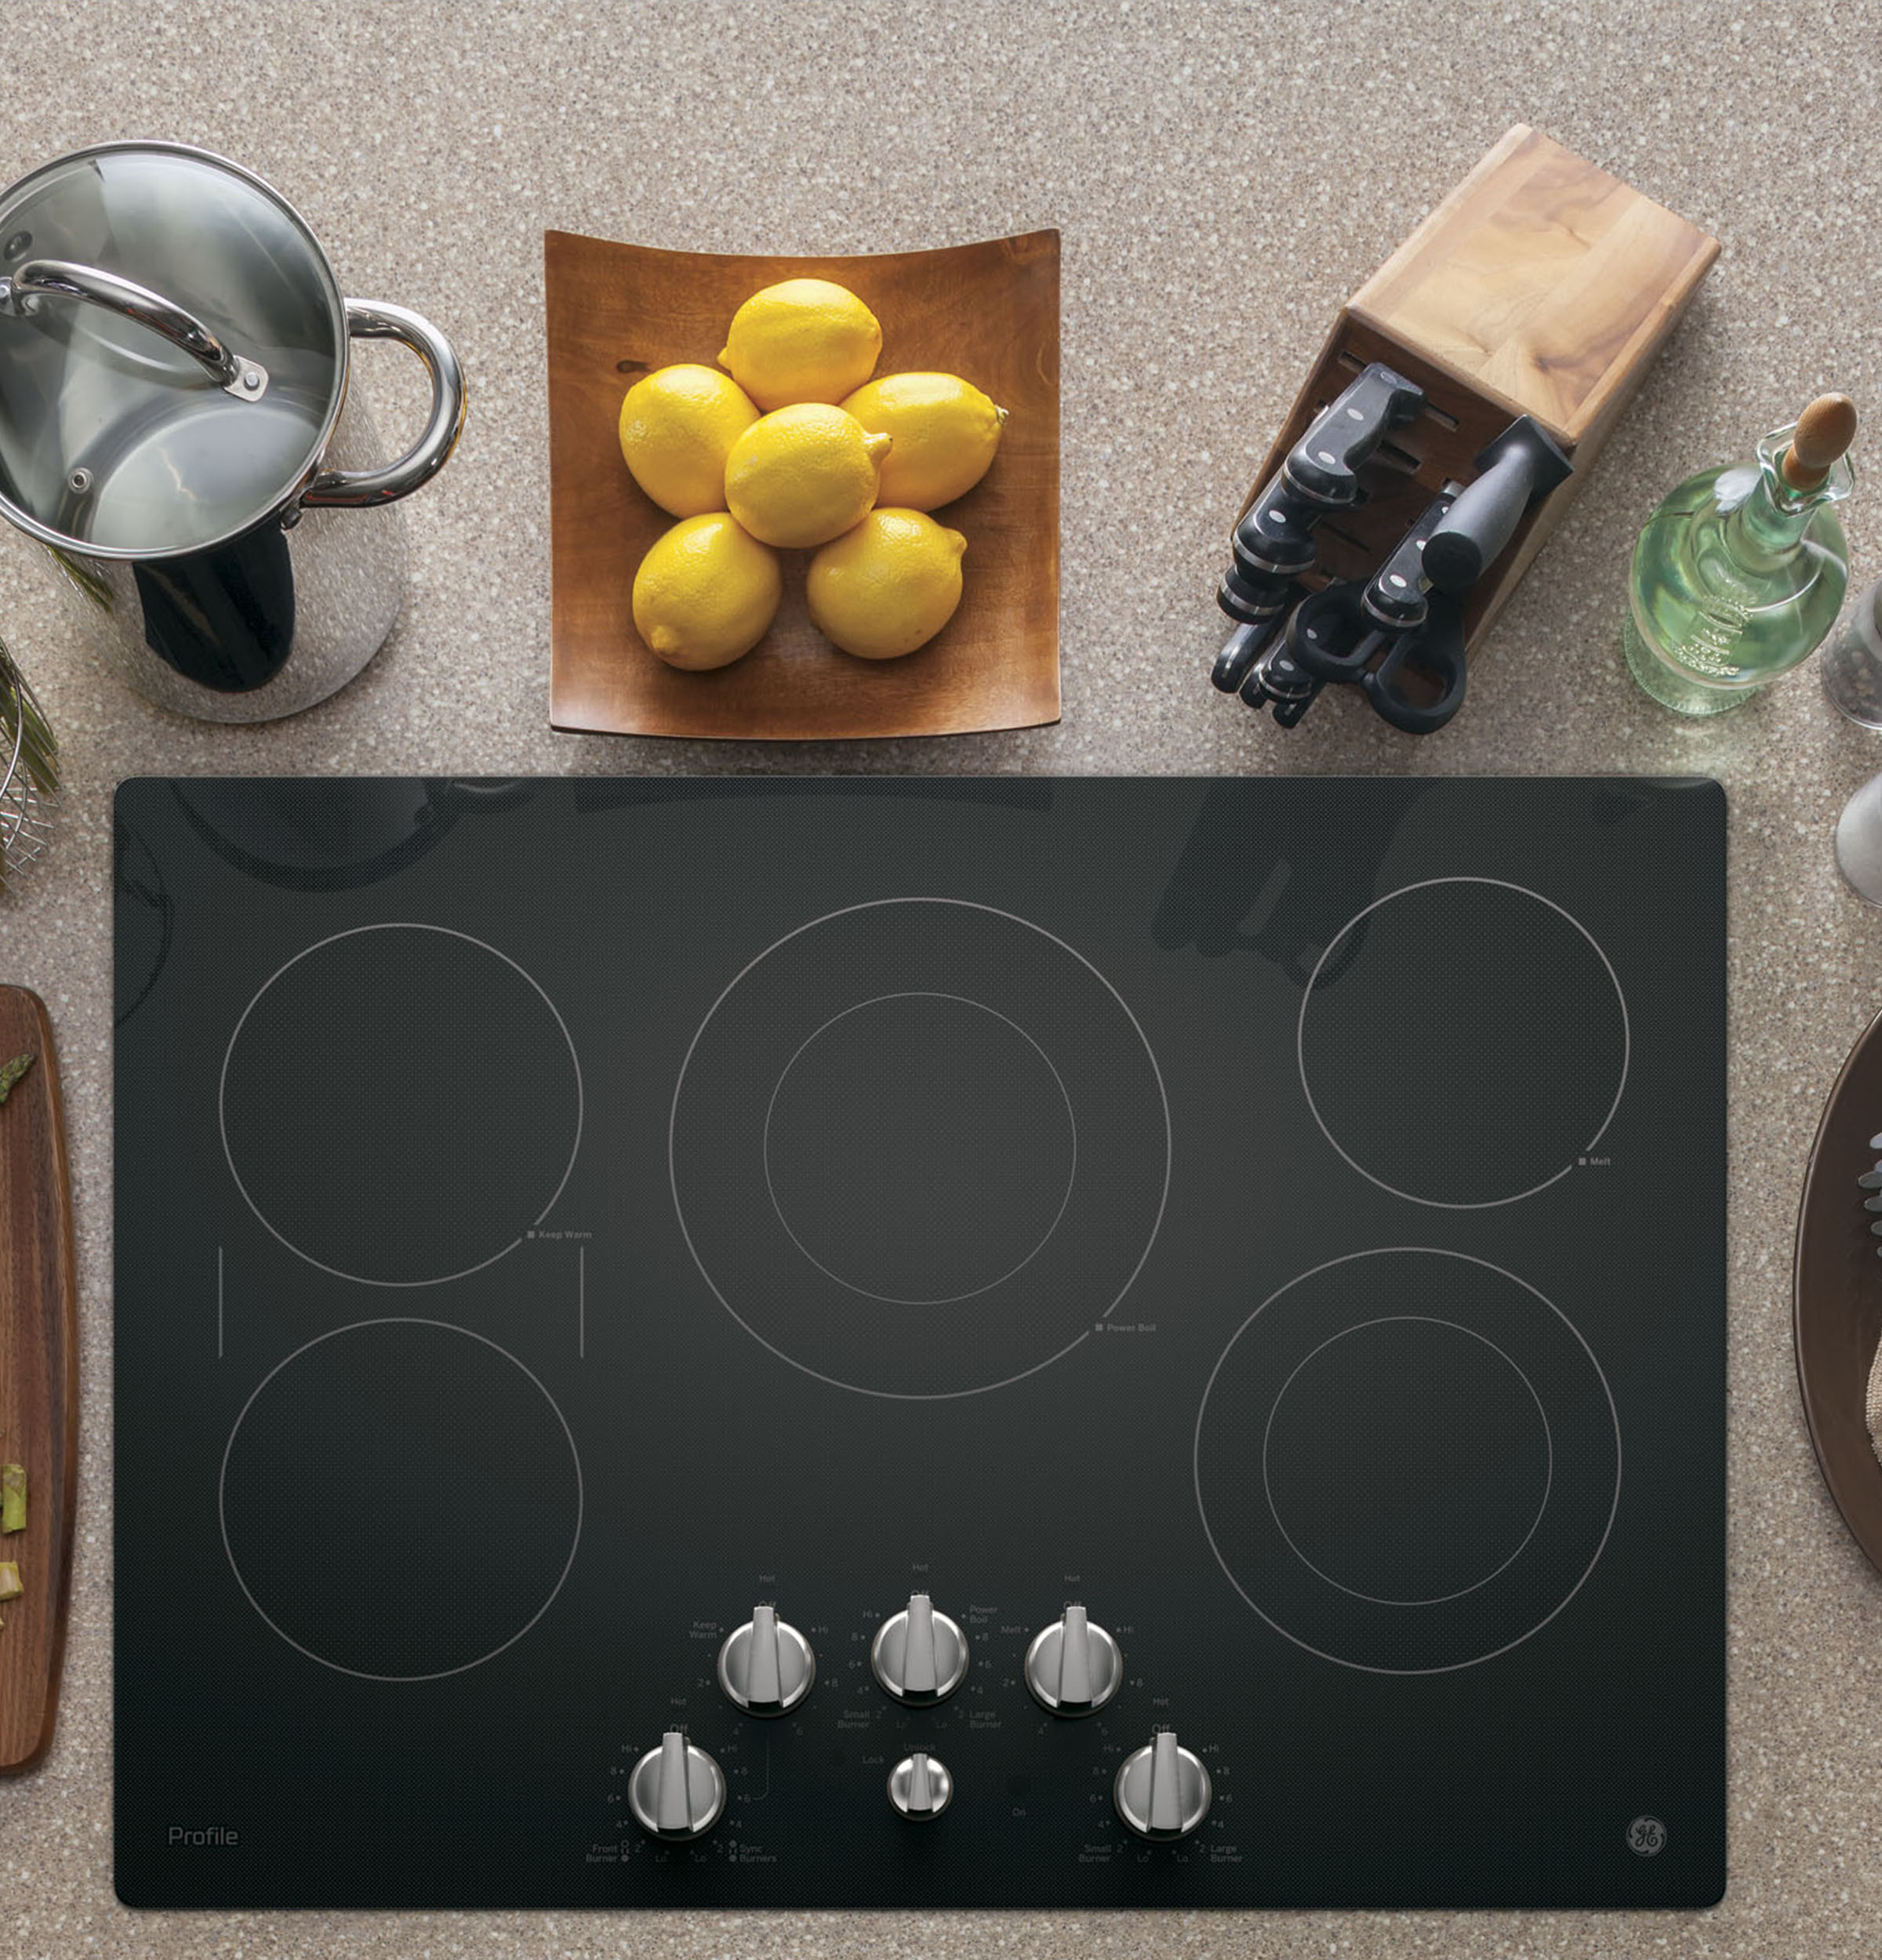 nutid 4 element induction cooktop manual